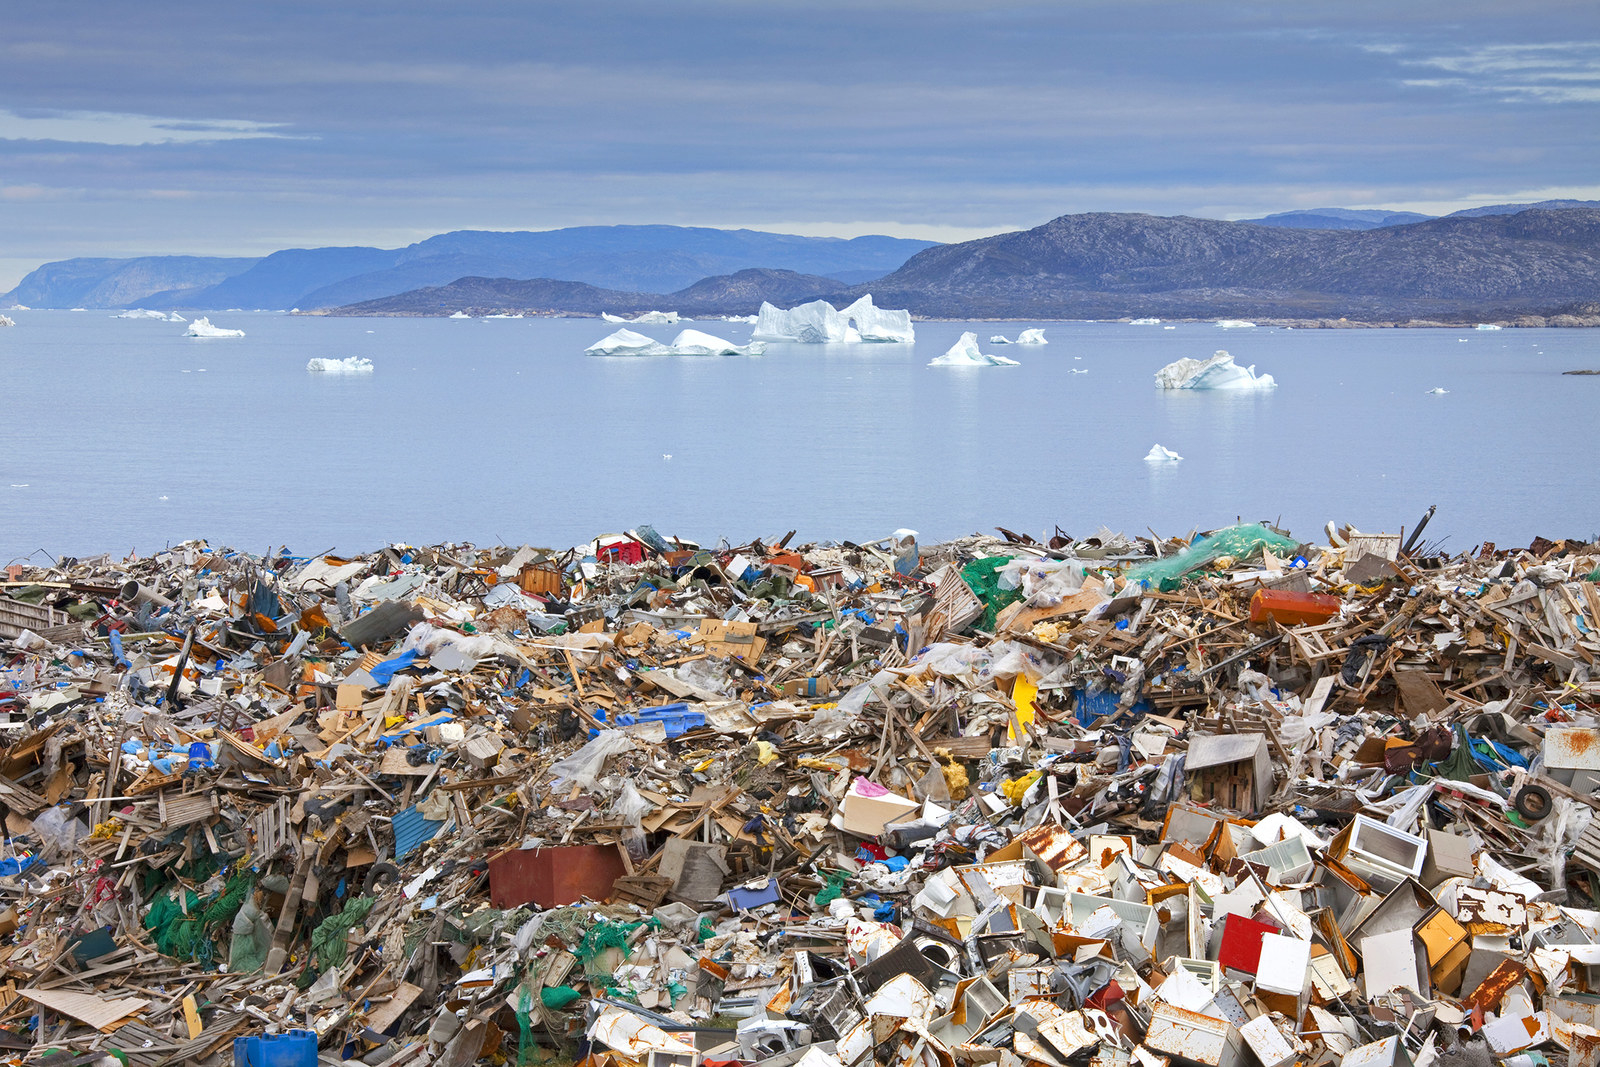 Rubbish gathers at a garbage dump in Disko Bay, Greenland, on Aug. 8, 2010.